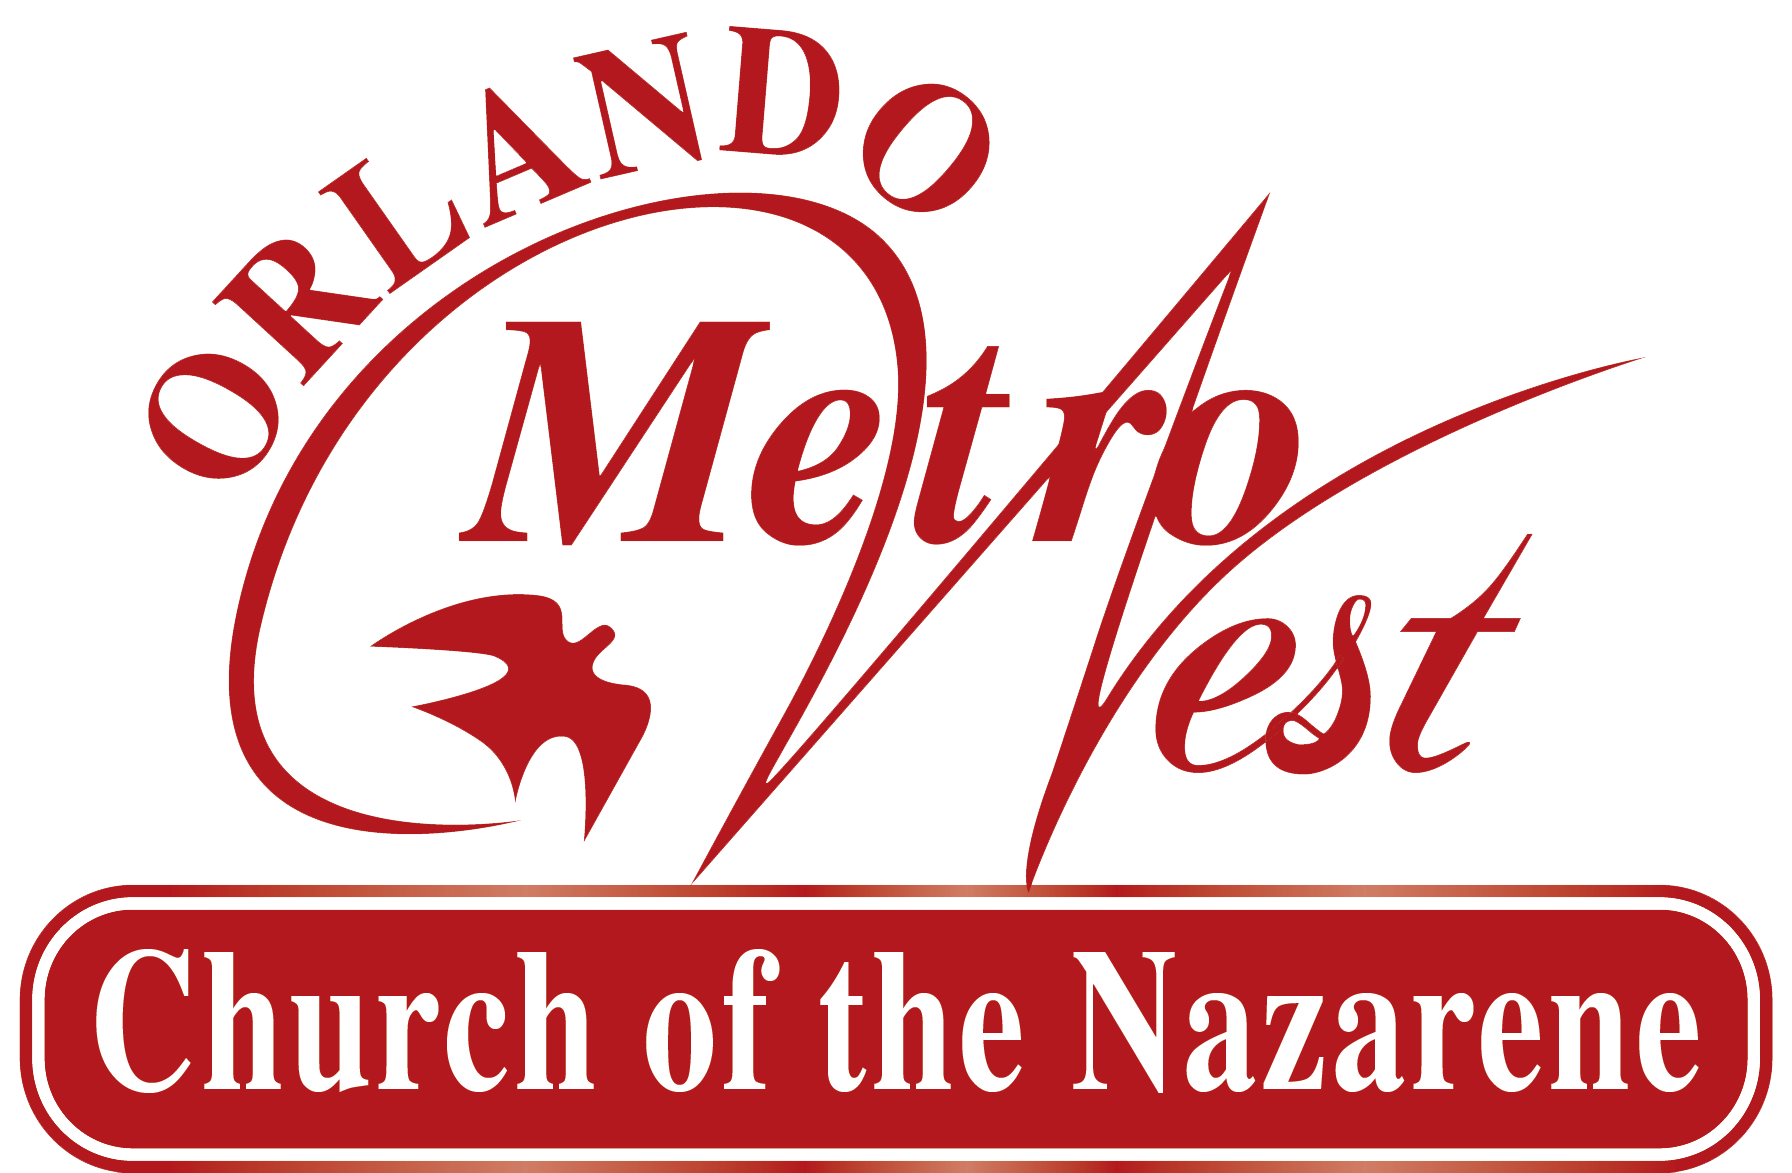 Orlando Metro West Church of the Nazarene Logo